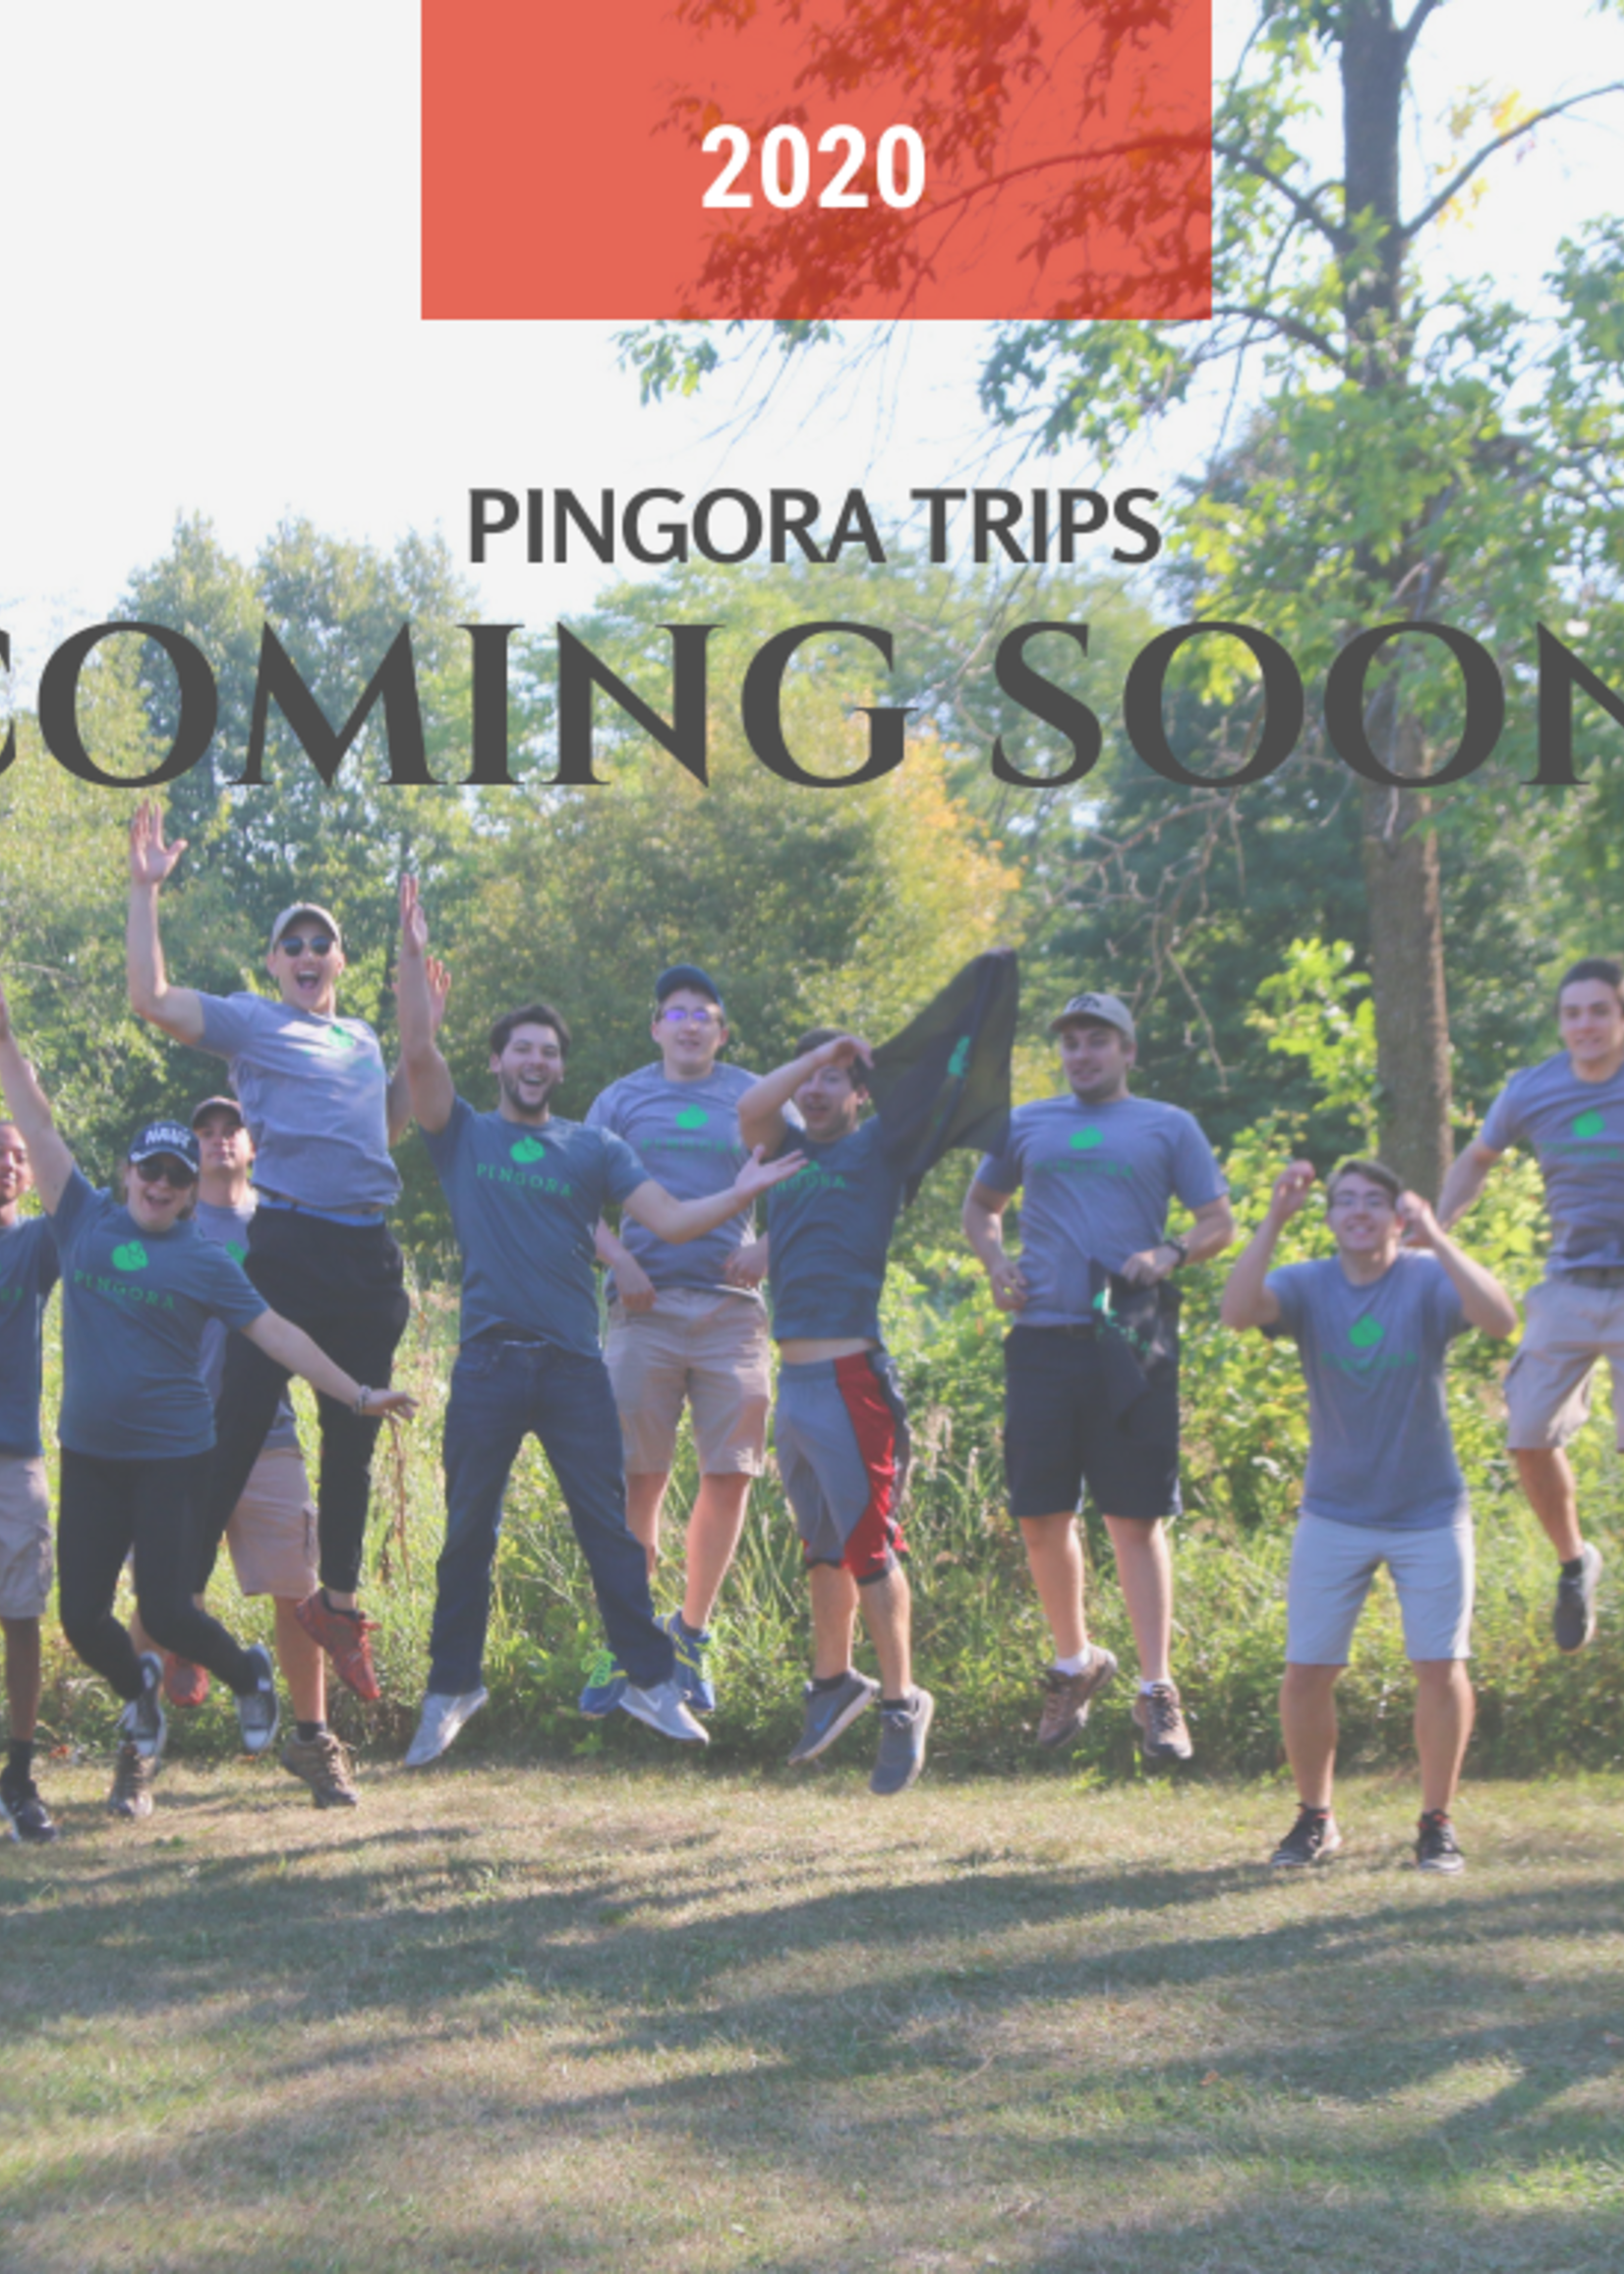 Pingora Trips 2020 Trips, Tabled due to COVID-19. Please check back again!